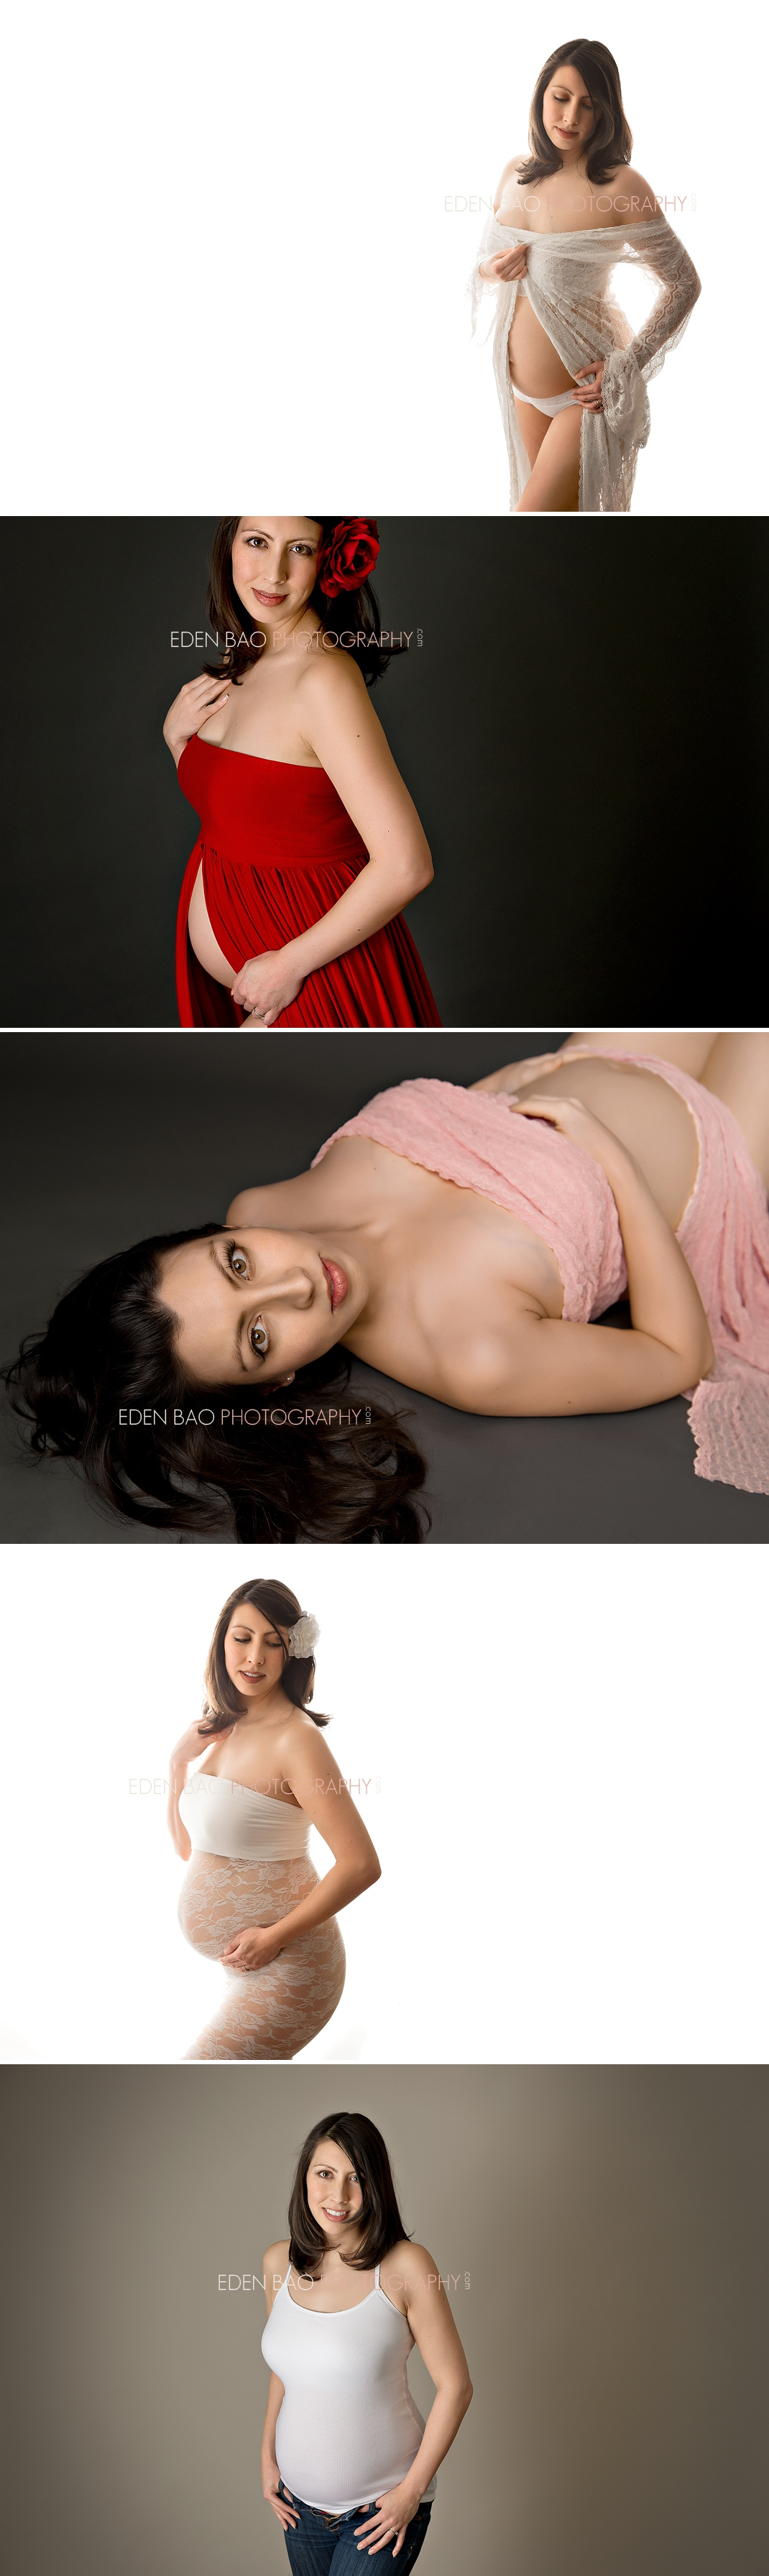 Maternity photography mentoring from Eden Bao Photography